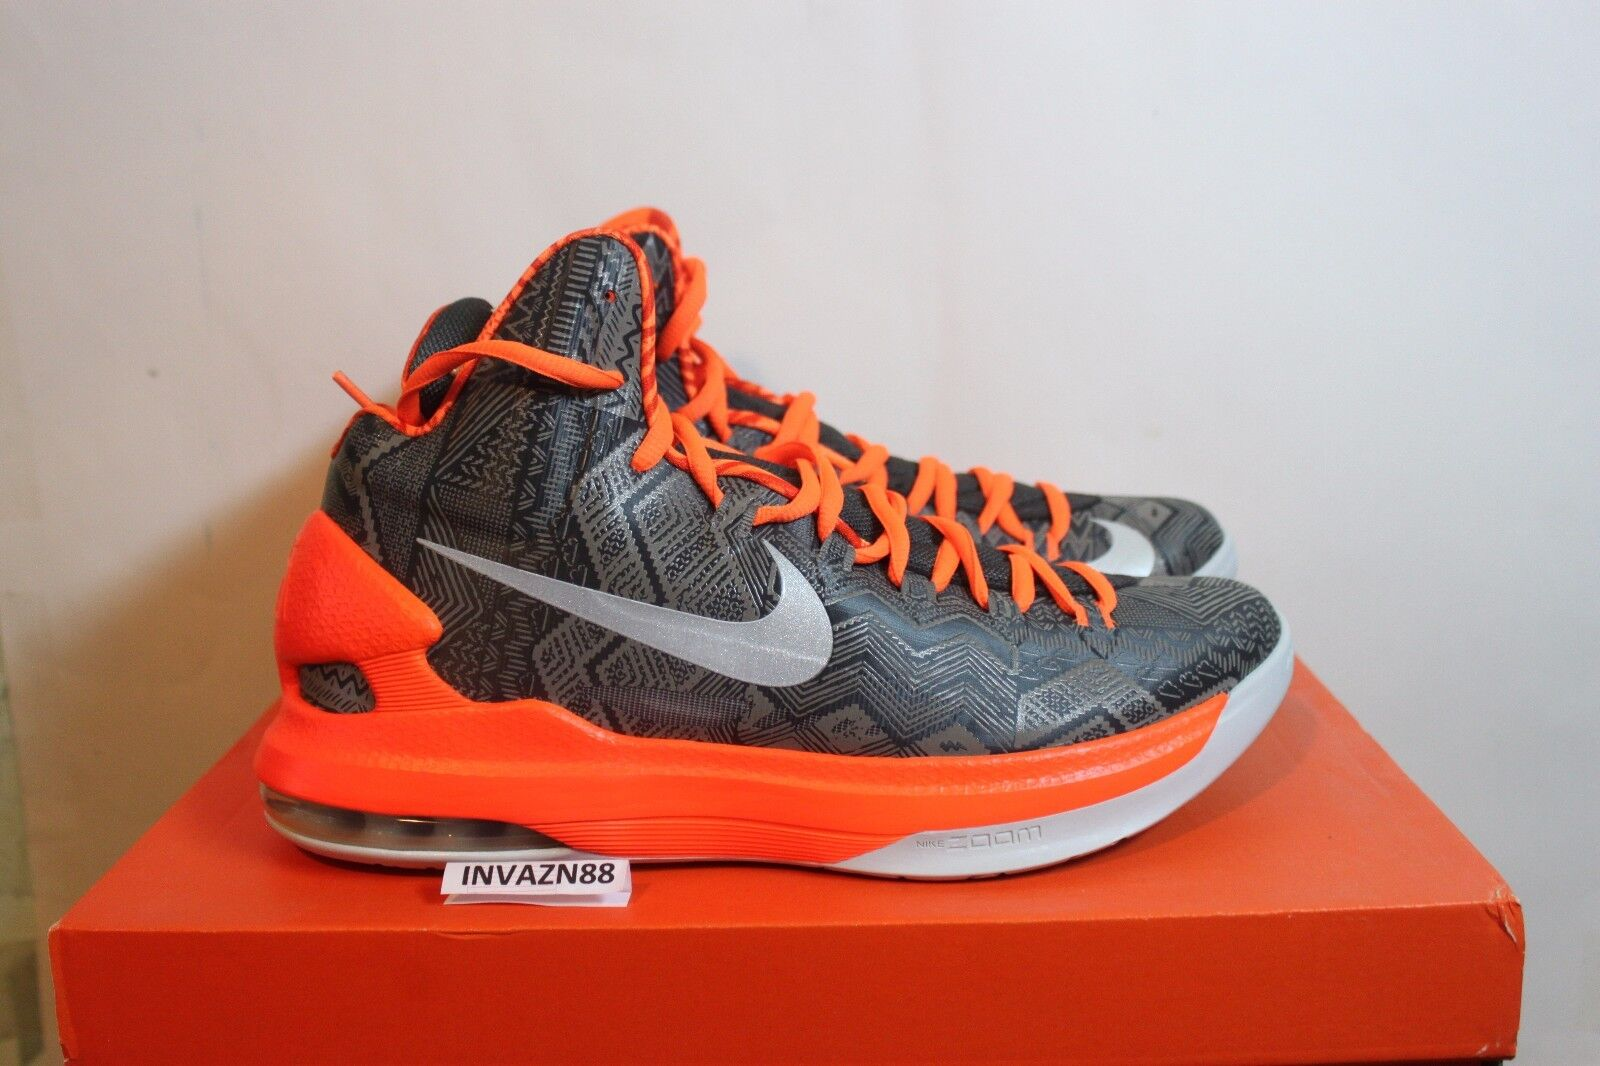 NIKE AIR AIR AIR ZOOM MAX KD V 5 BHM BLACK HISTORY MONTH GREY ANTHRACITE 2012 DS SIZE 9 f7f622